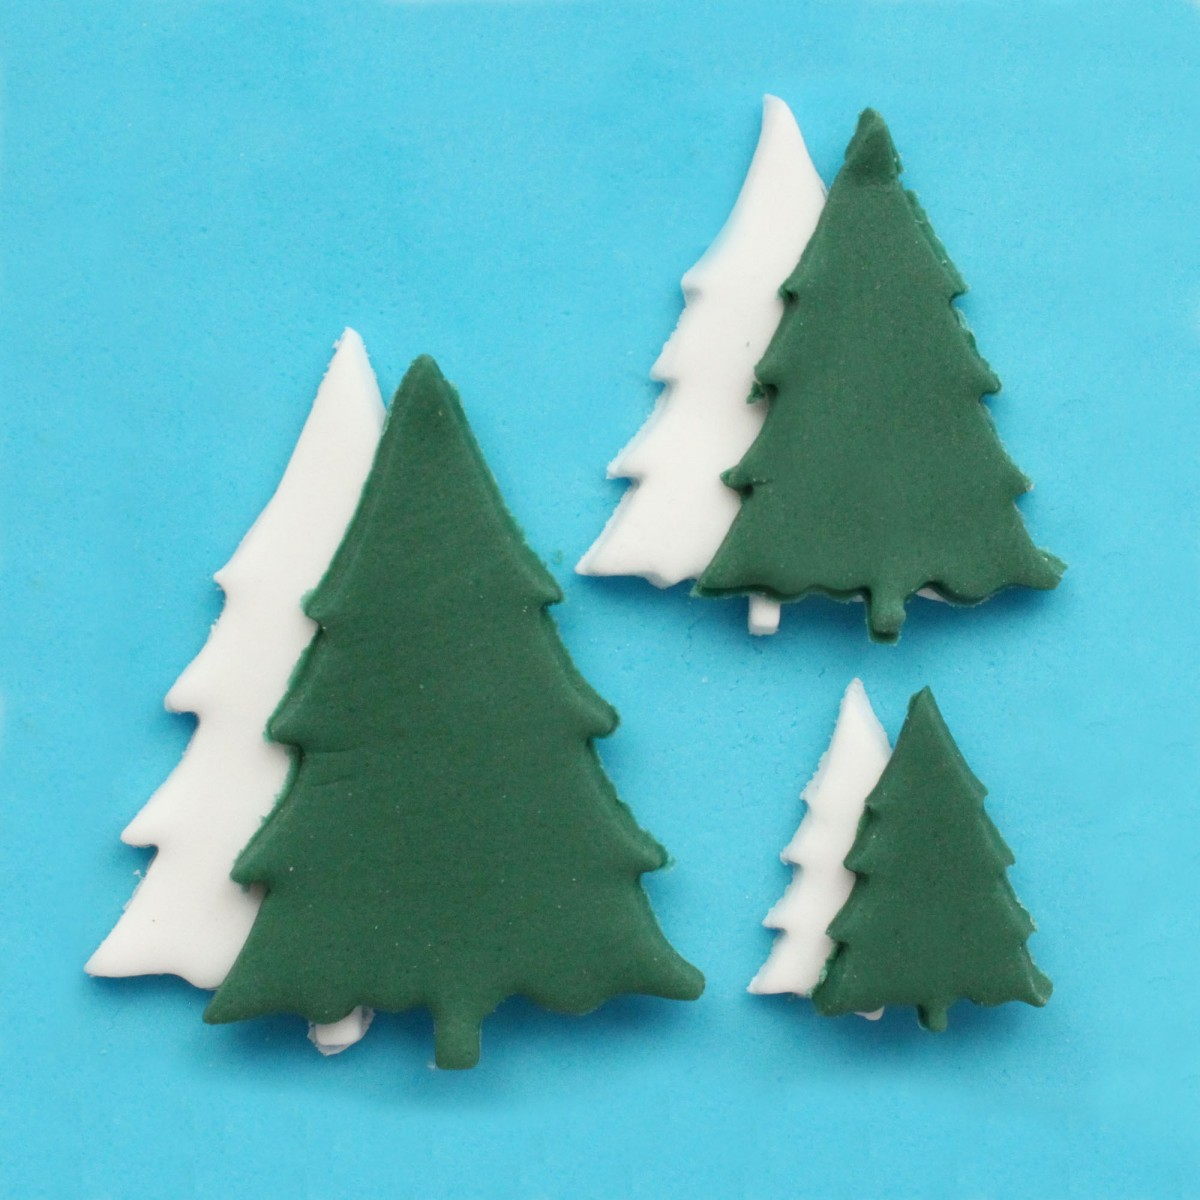 Tree Cutter Christmas Tree Cutter Set 3pc